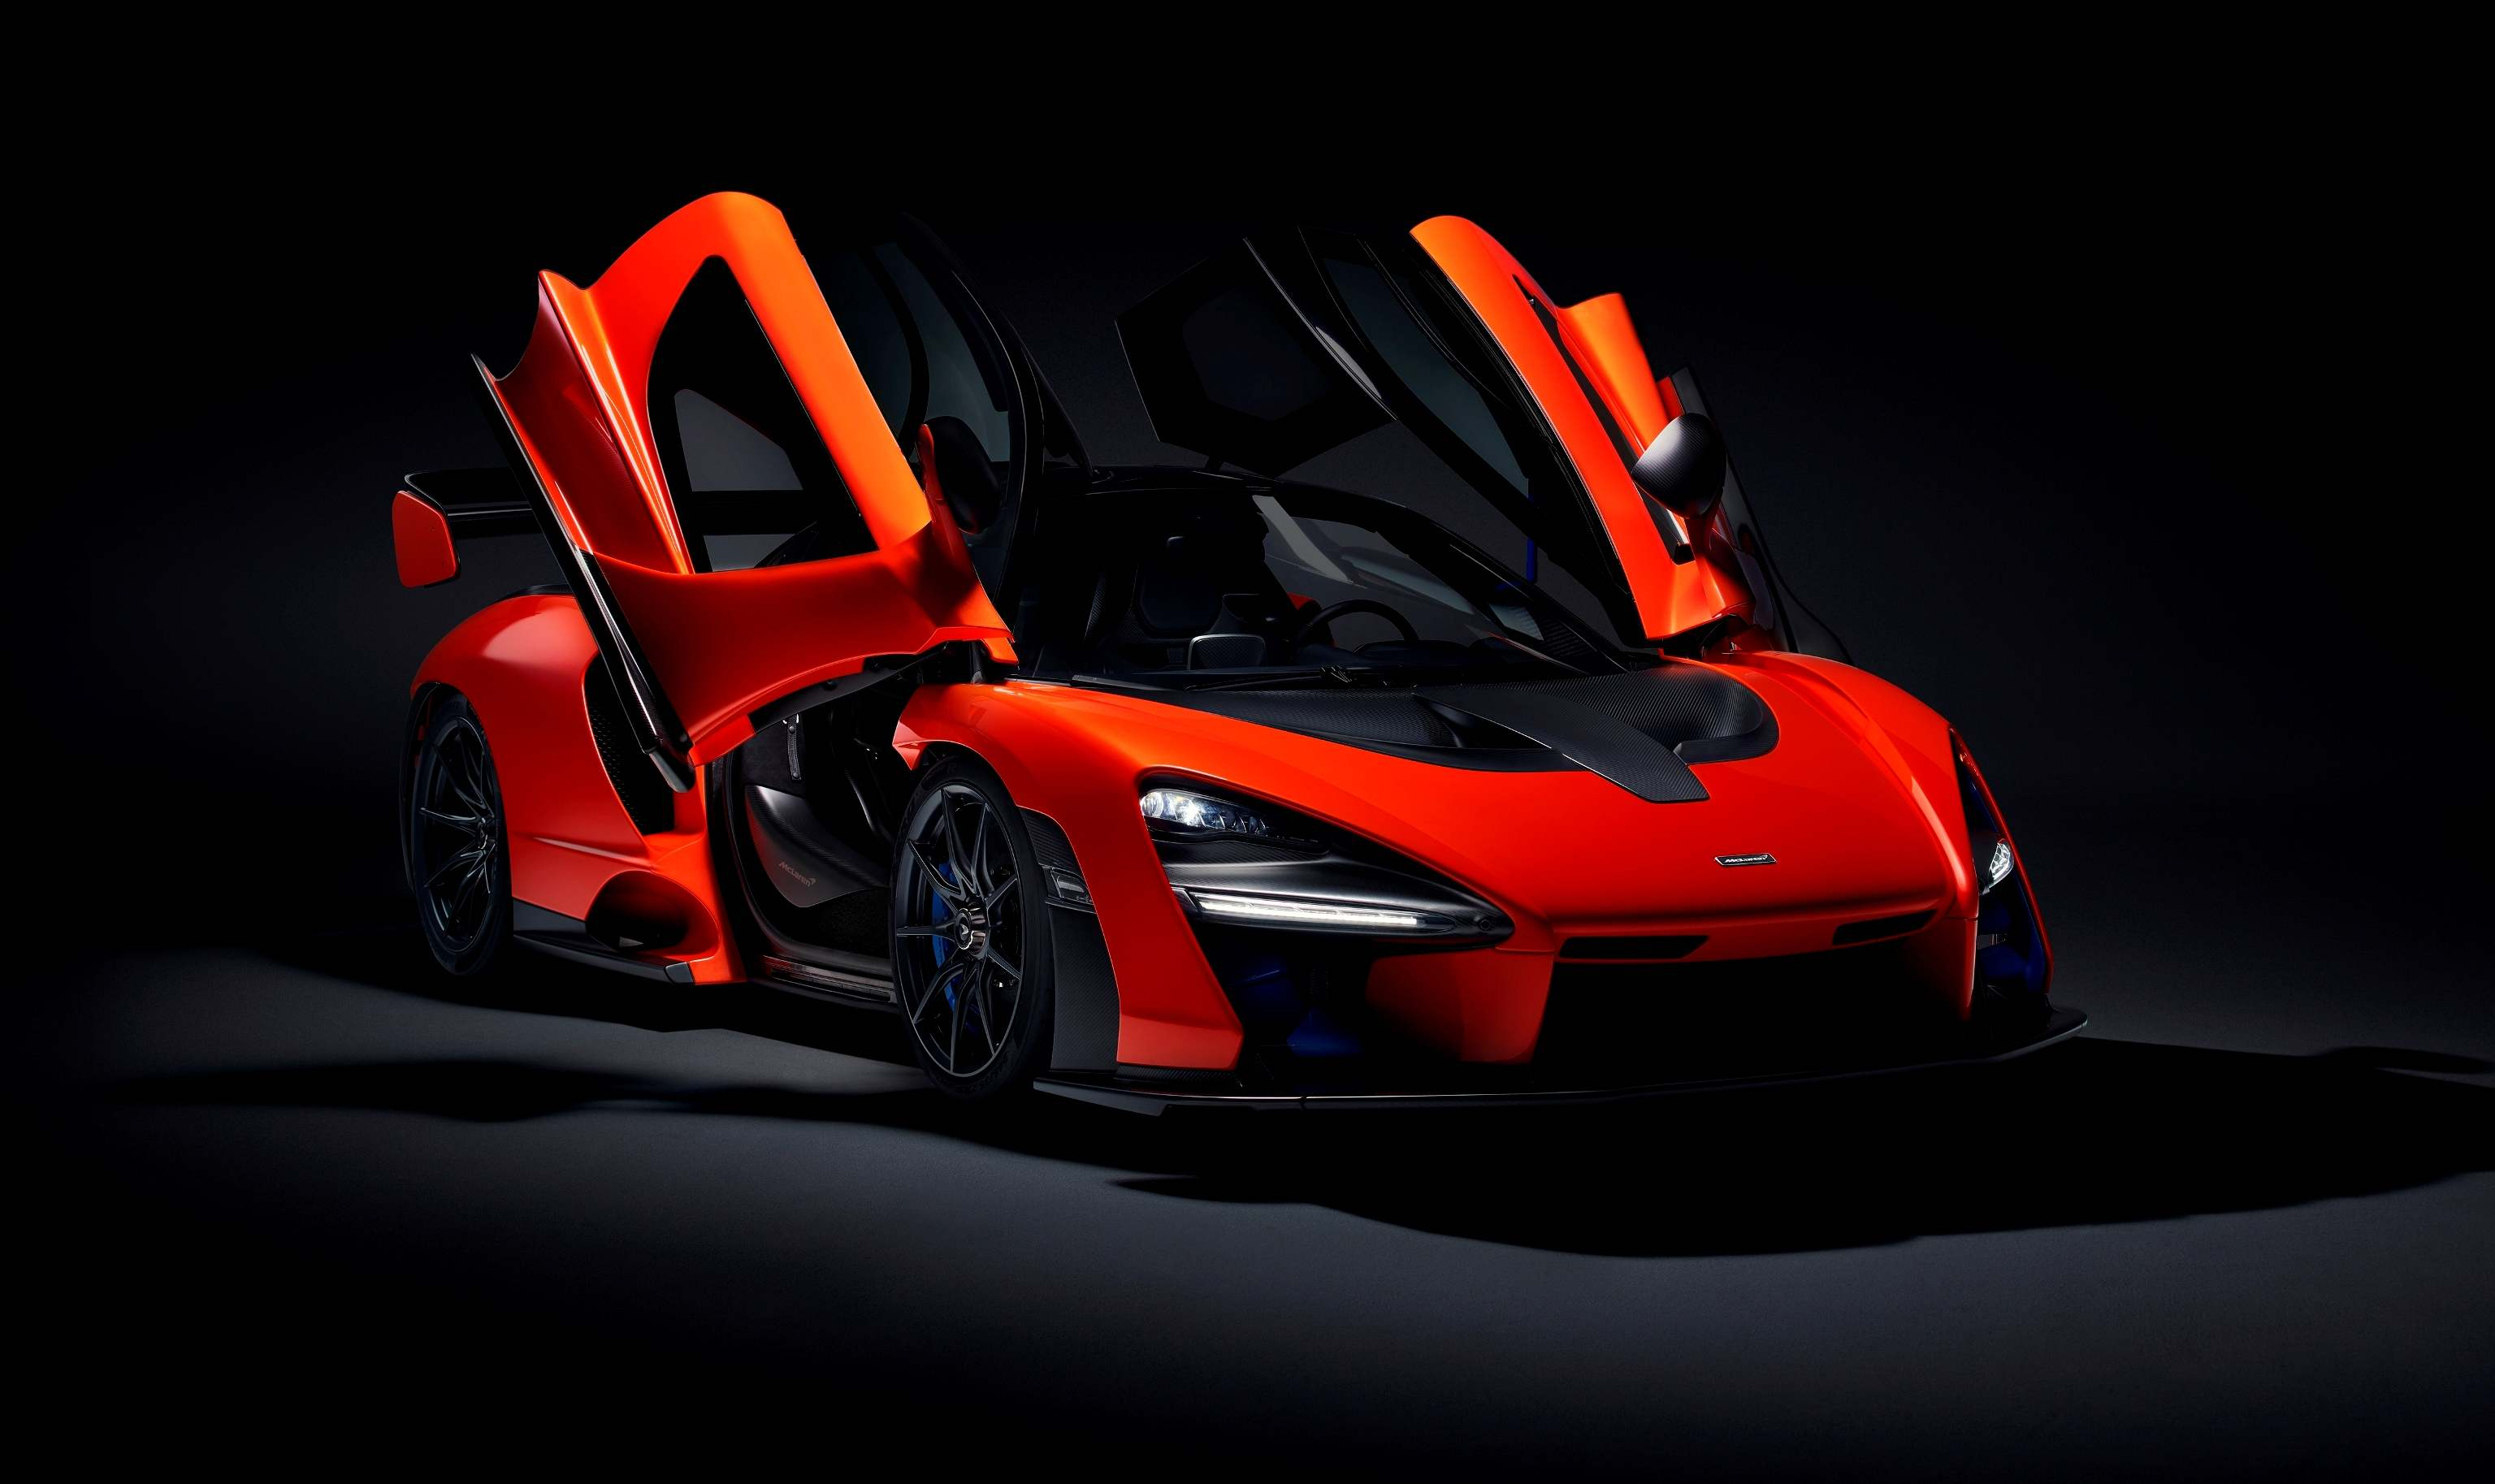 Mclaren Senna The Ultimate Car On Track And Road Ayrton